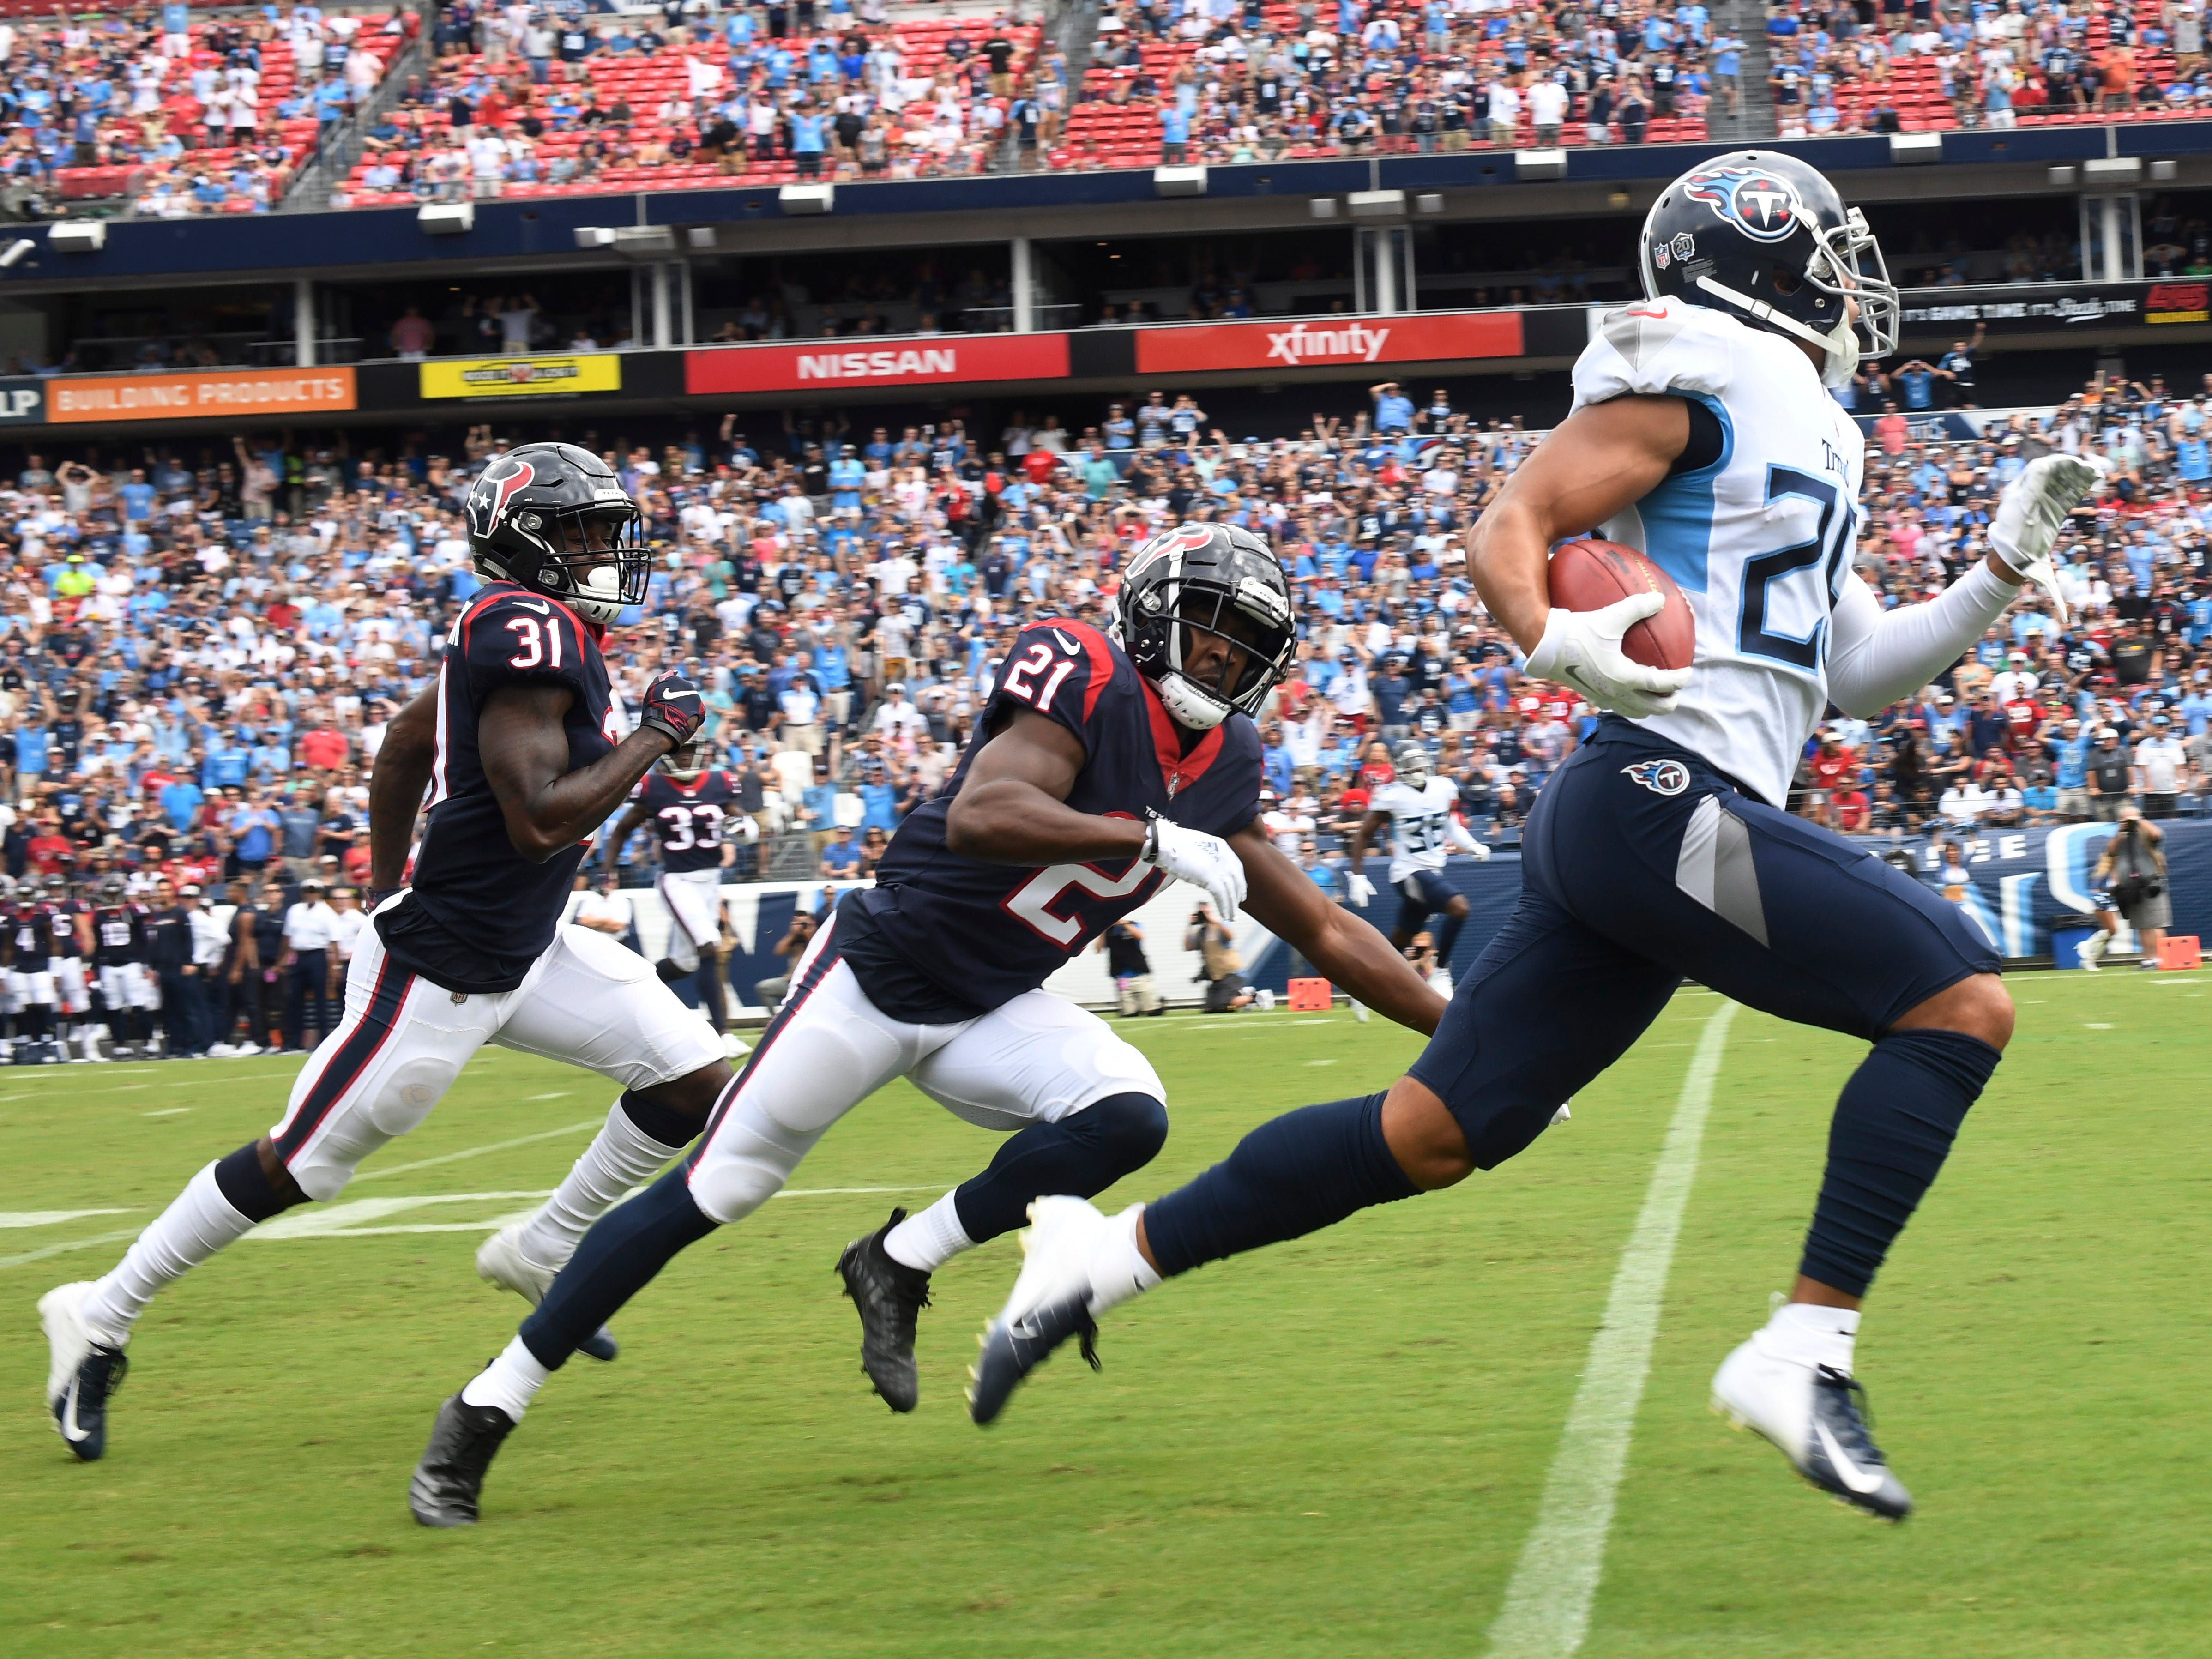 Titans cornerback Dane Cruikshank (29) takes off on his touchdown run in the first quarter at Nissan Stadium Sunday, Sept. 16, 2018, in Nashville, Tenn.